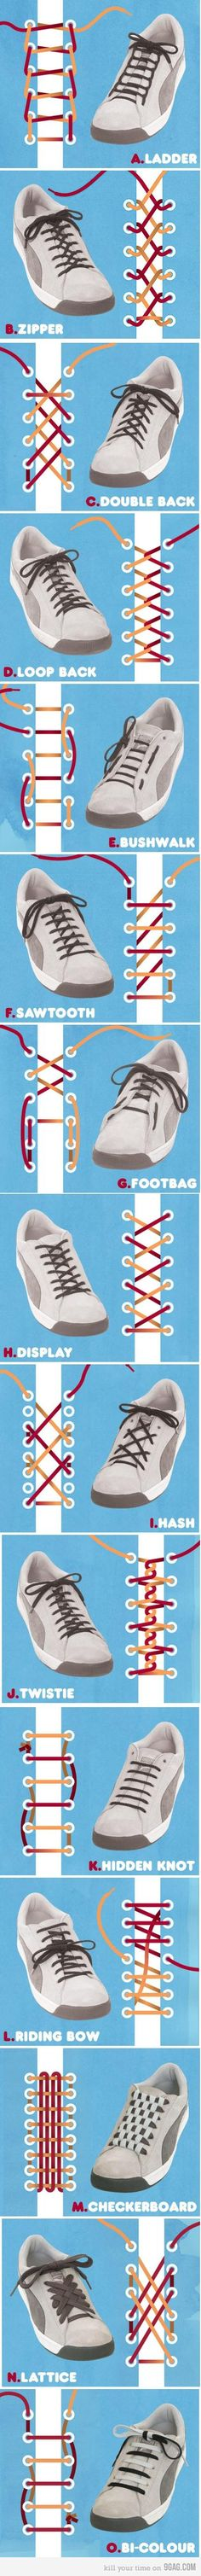 Who knew there were so many different ways to lace up your shoes?